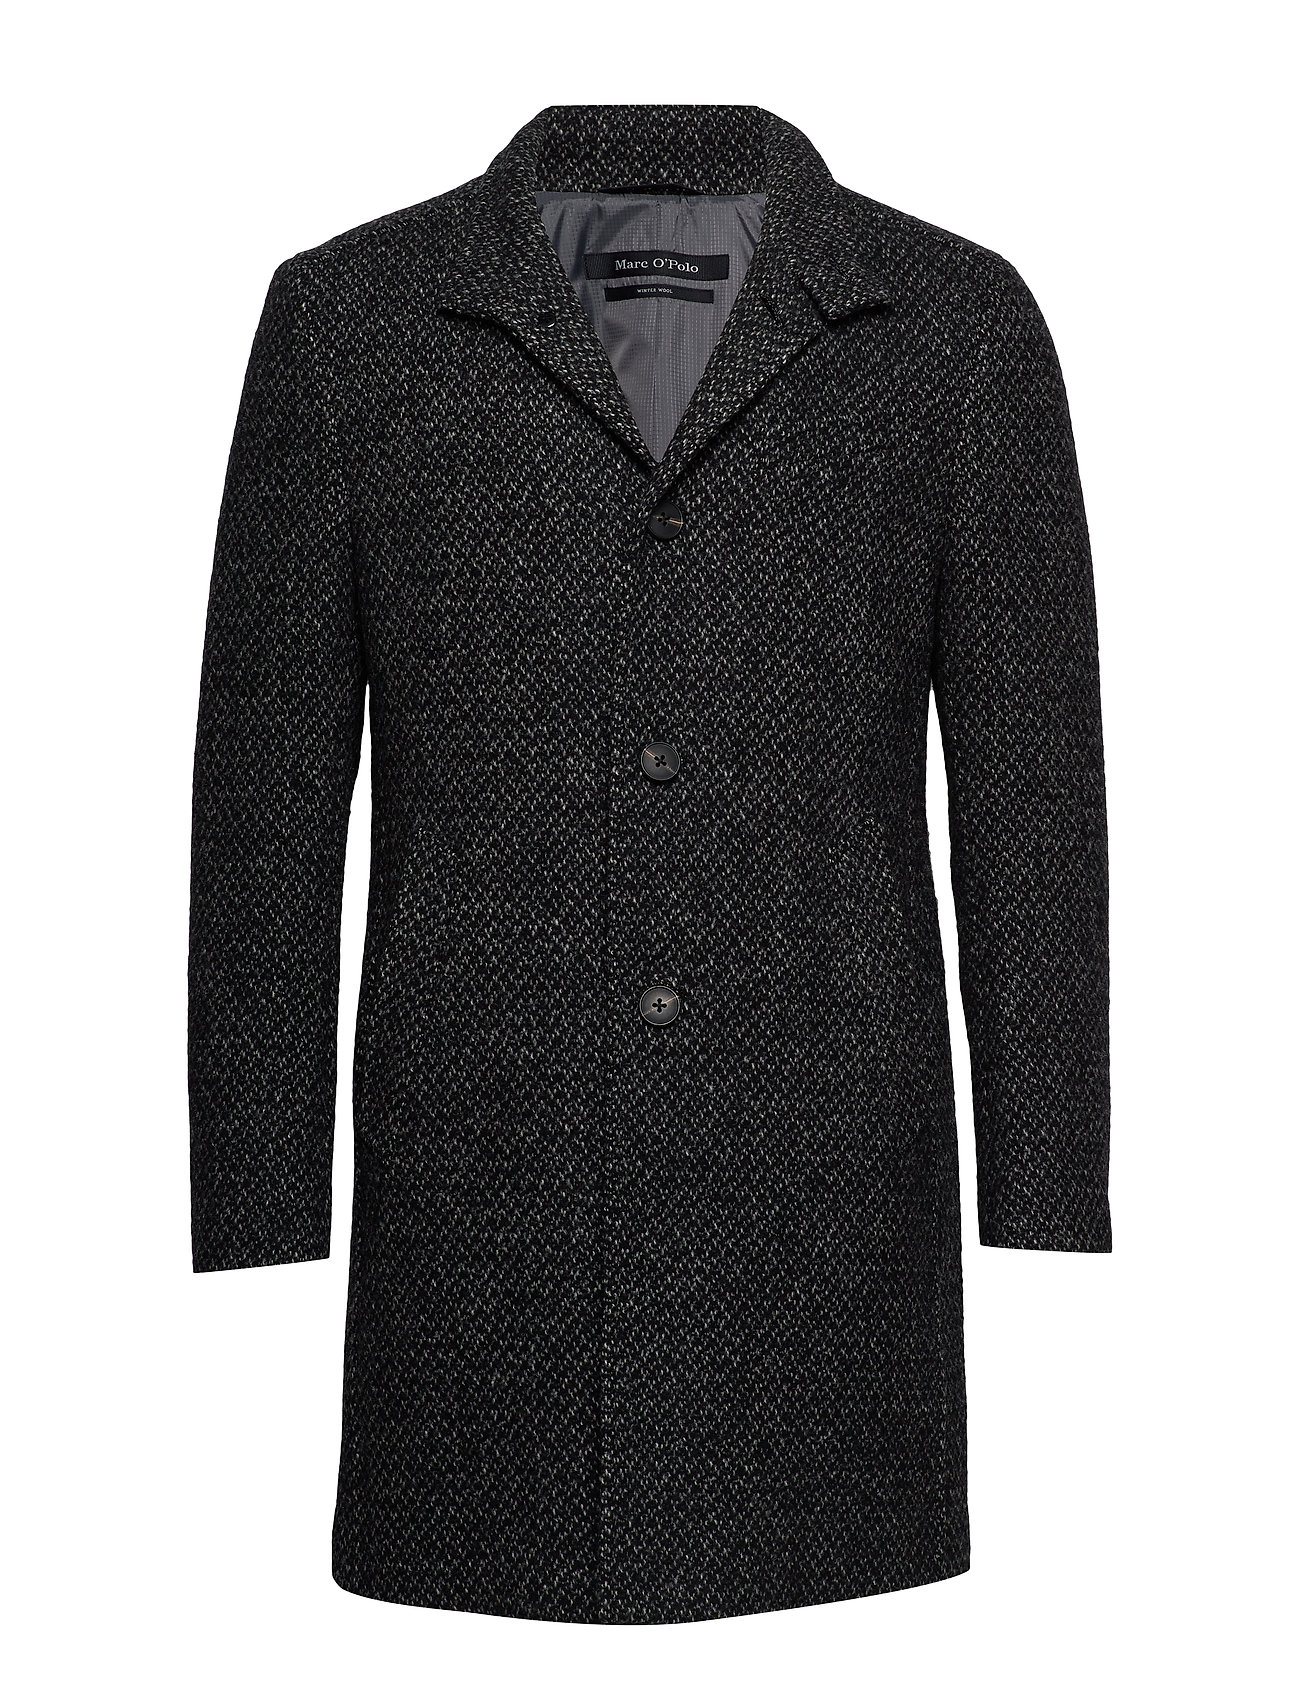 Marc O'Polo Coat, regular fit, long sleeve, sta - DARK GREY MELANGE